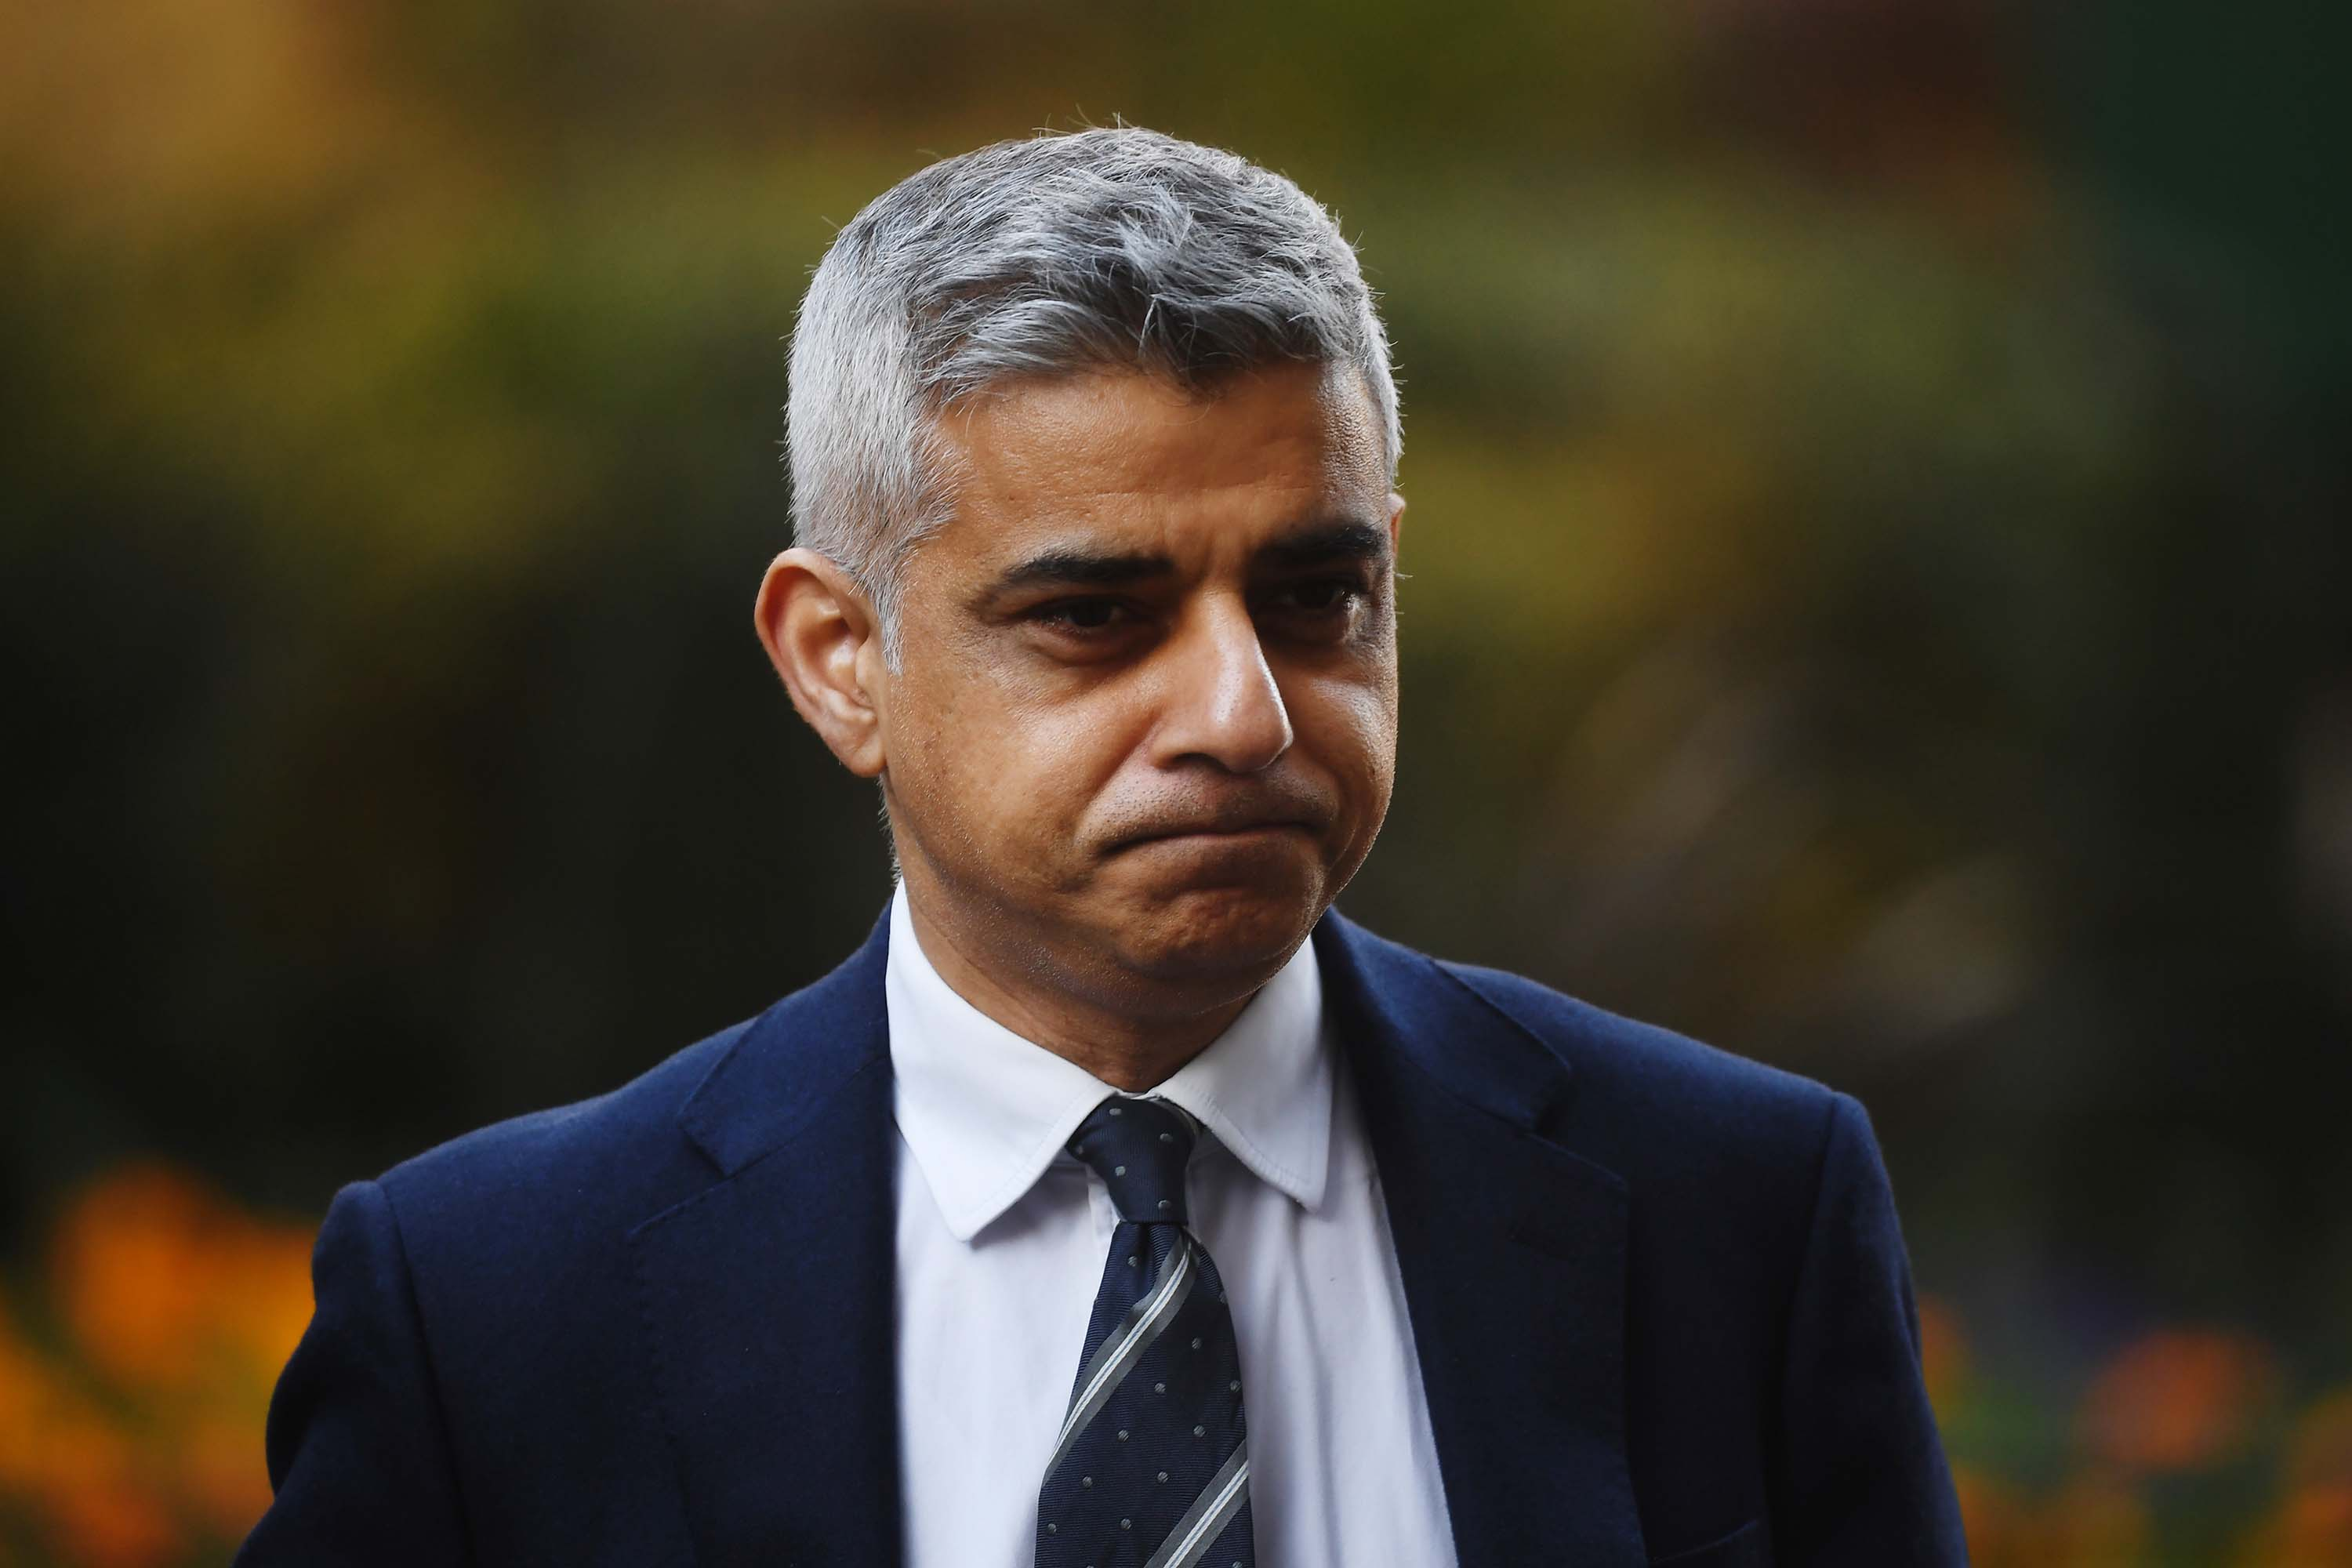 London Mayor Sadiq Khan is pictured at Downing Street in London on March 16.